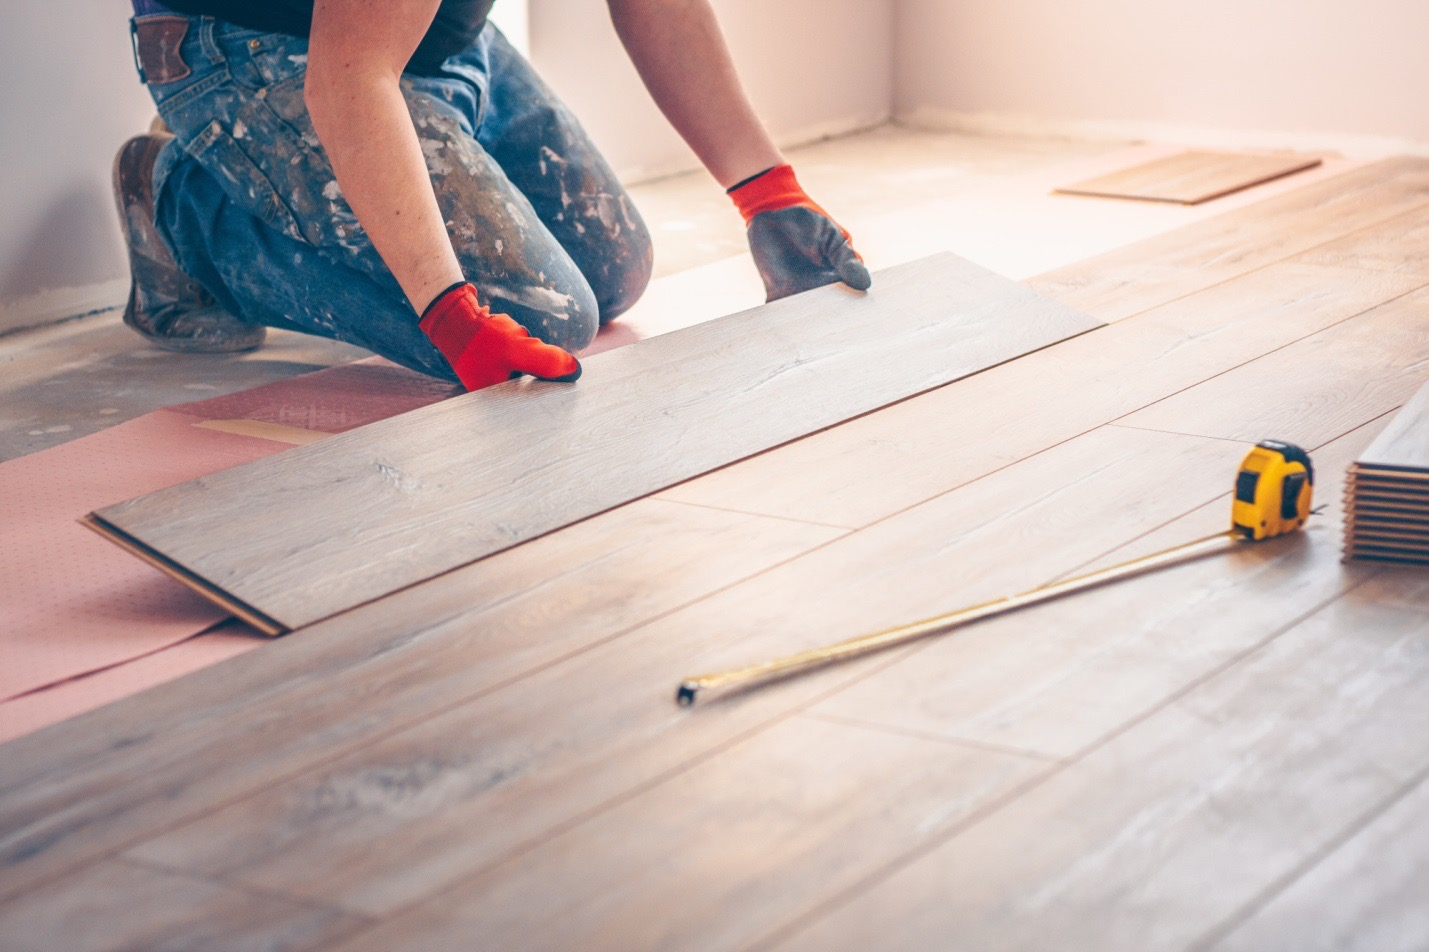 Flooring Market 2021 High Growth Forecast due to Rising Demand and Future Trends to 2031